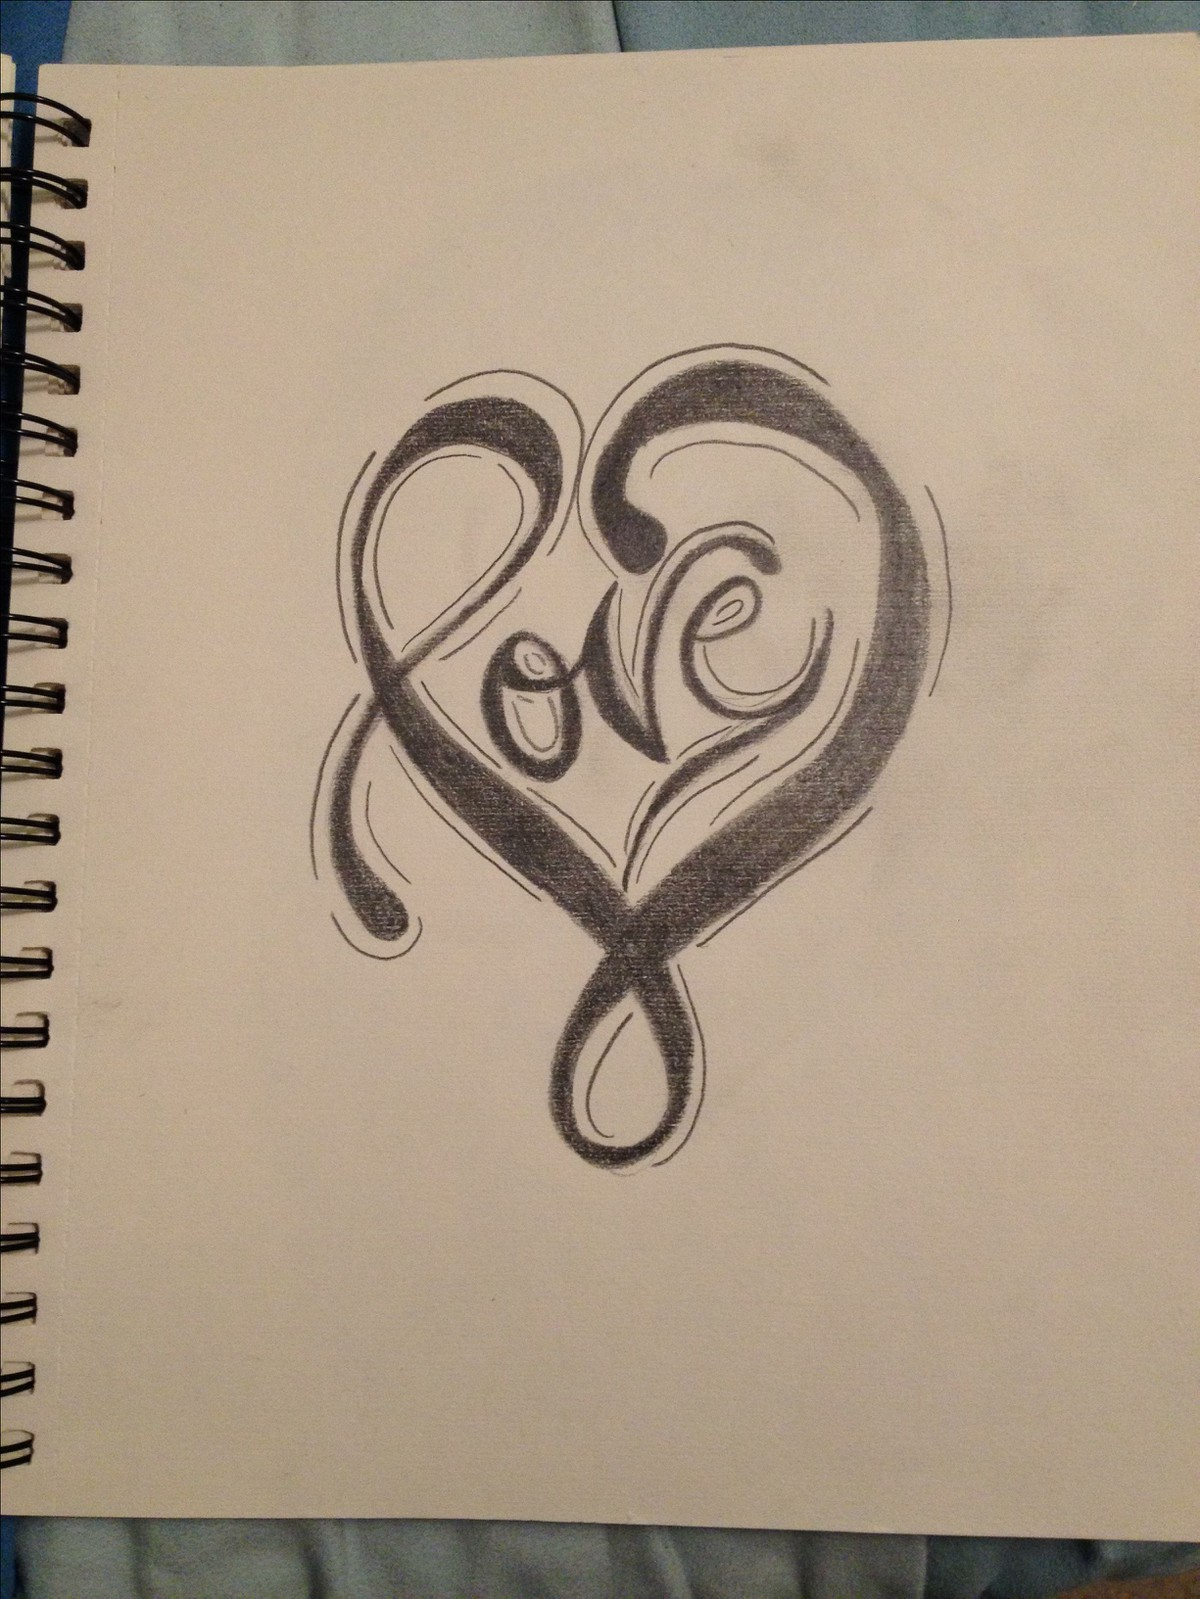 Love Drawing Easy At Getdrawings Com Free For Personal Use Love